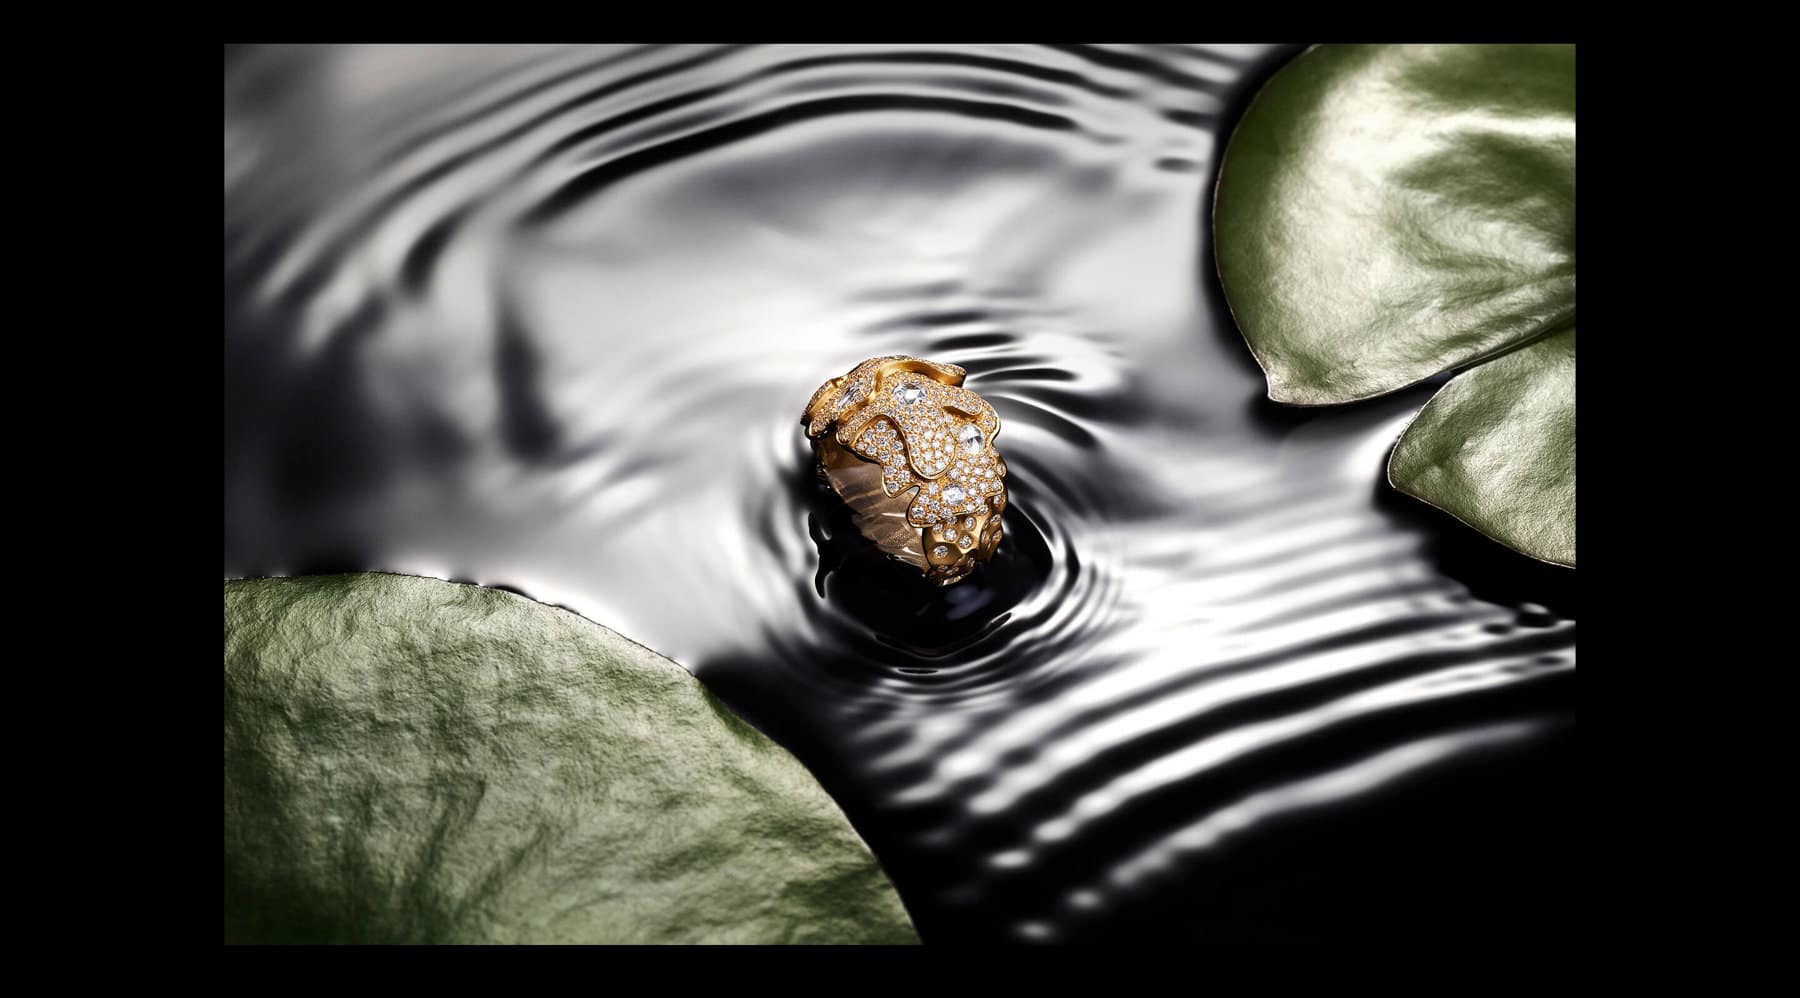 A color photo shows a David Yurman High Jewelry Day Petals ring emerging from a body of water with green lily pads. Ripples surround the ring, which is crafted from overlapping lily-pad-shaped sections of 18K yellow gold encrusted with brilliant- and rose-cut white diamonds.